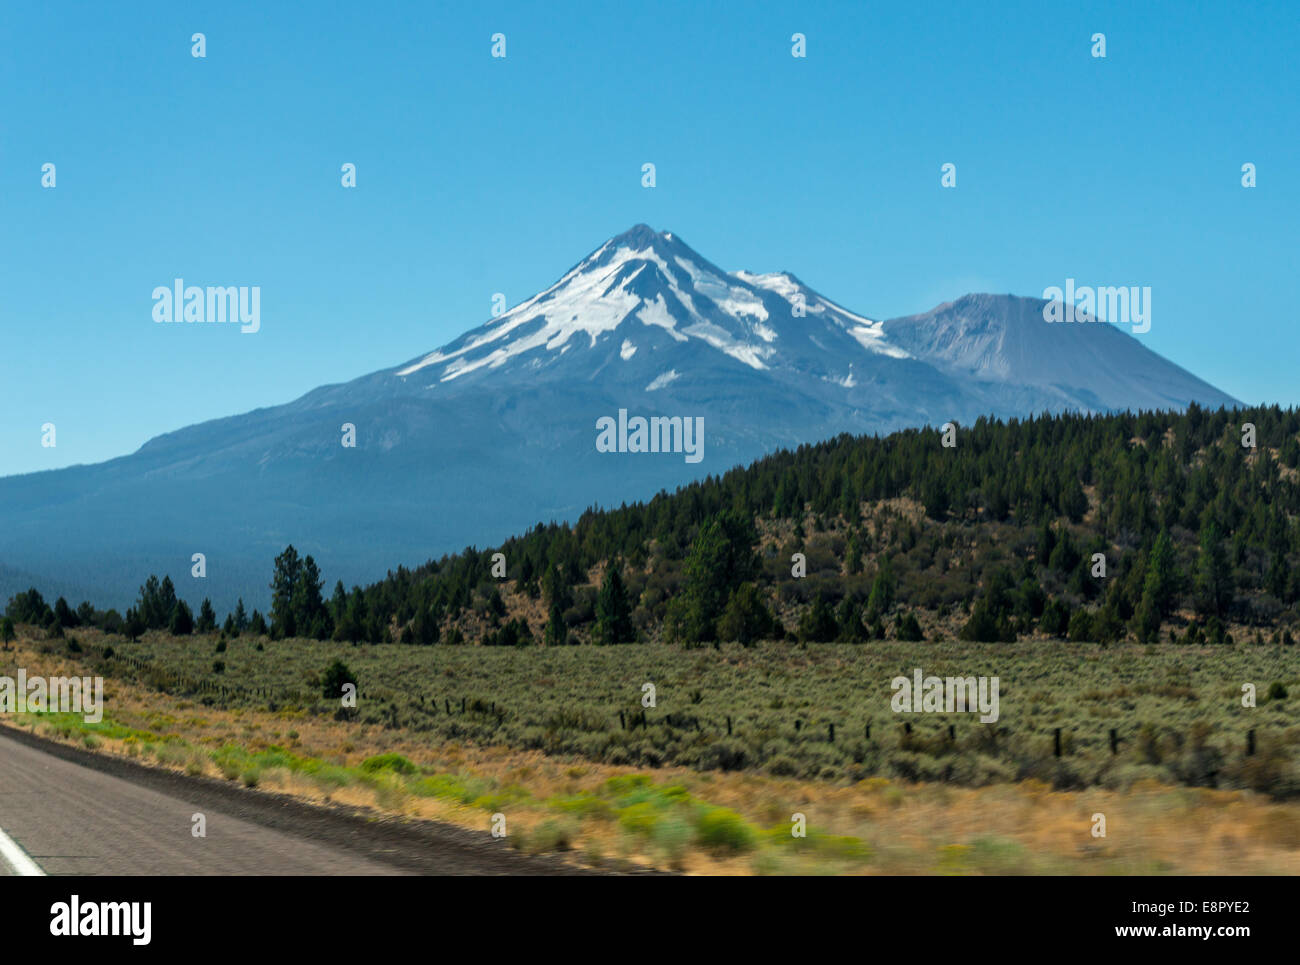 Mount Shasta - Stock Image